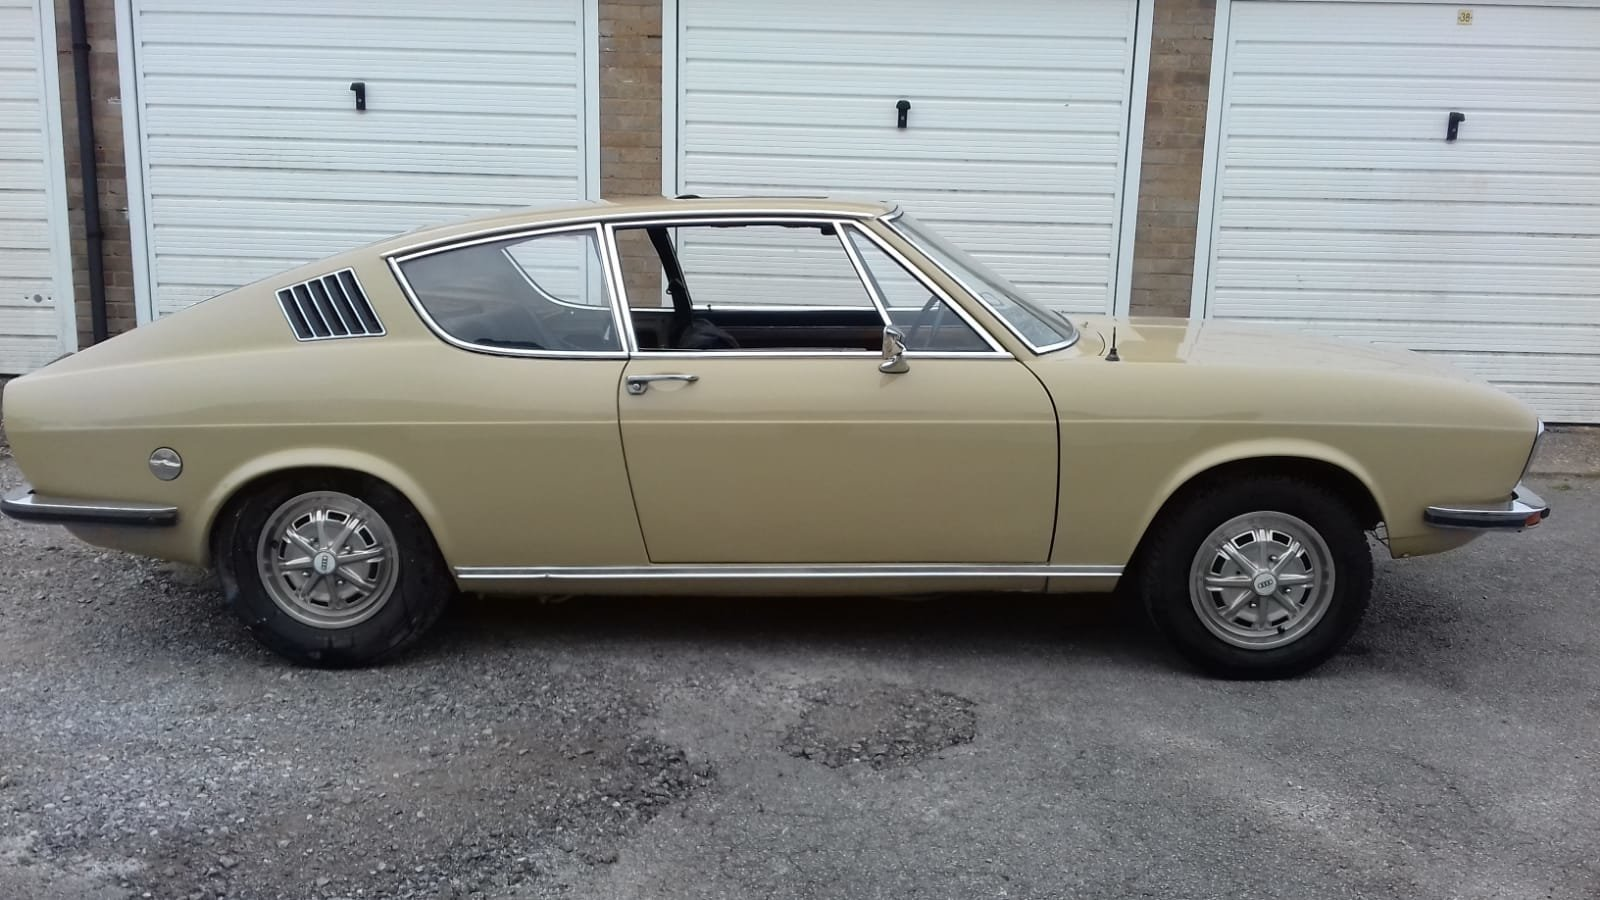 Audi 100 S Coupe - Sahara Beige  - Project 1972 For Sale (picture 4 of 6)